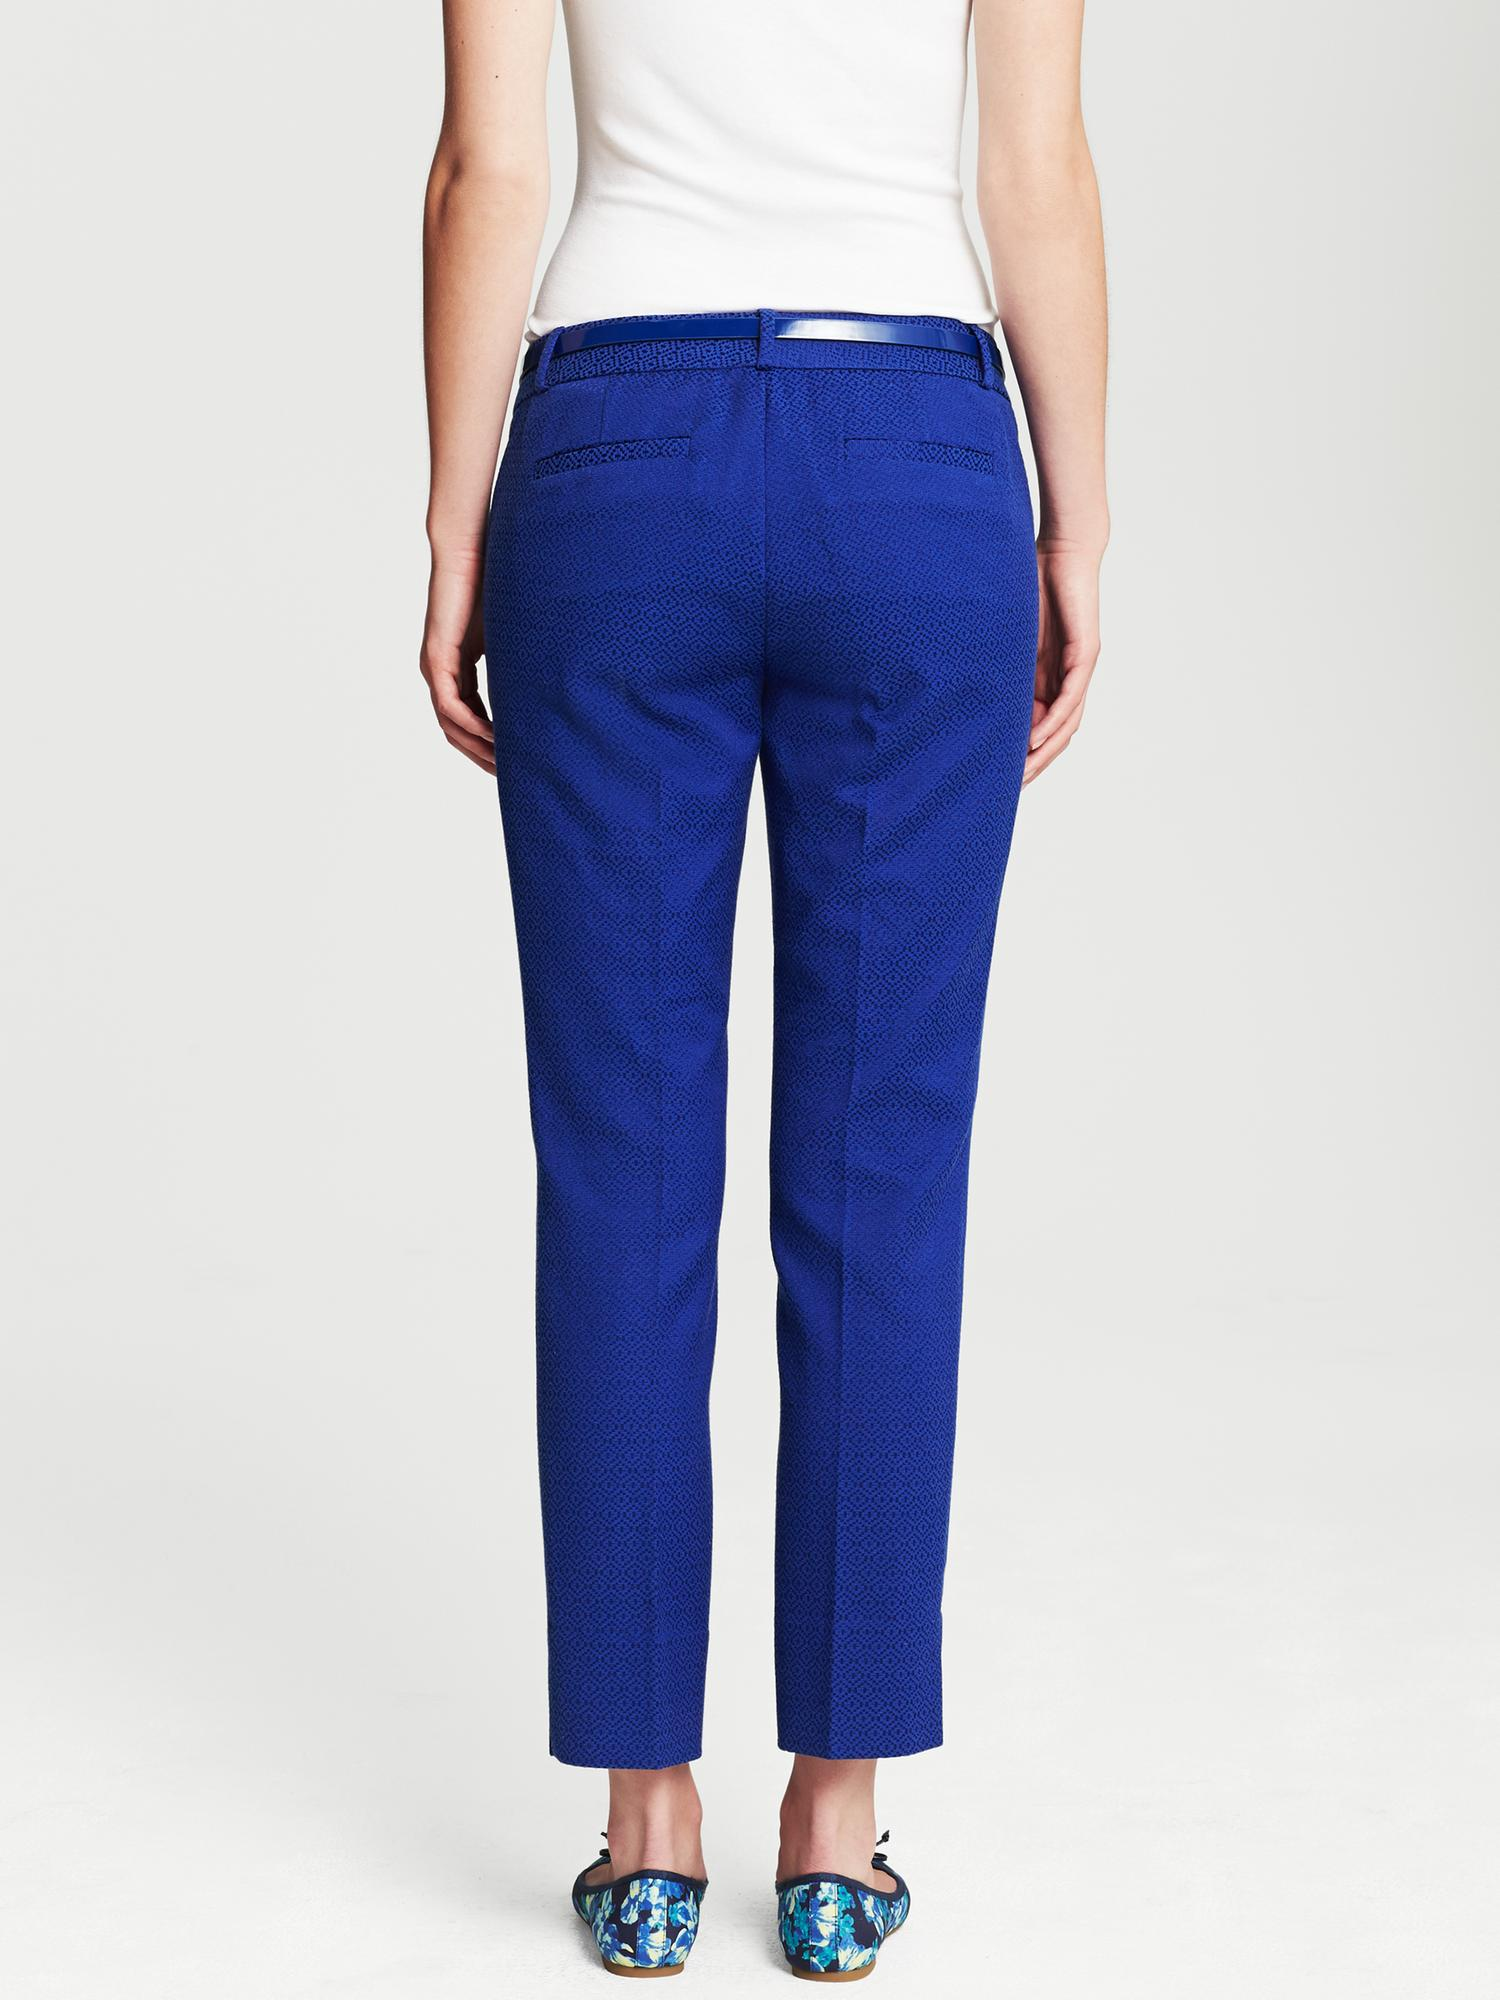 Banana Republic Camdenfit Cobalt Skinny Ankle Pant In Blue